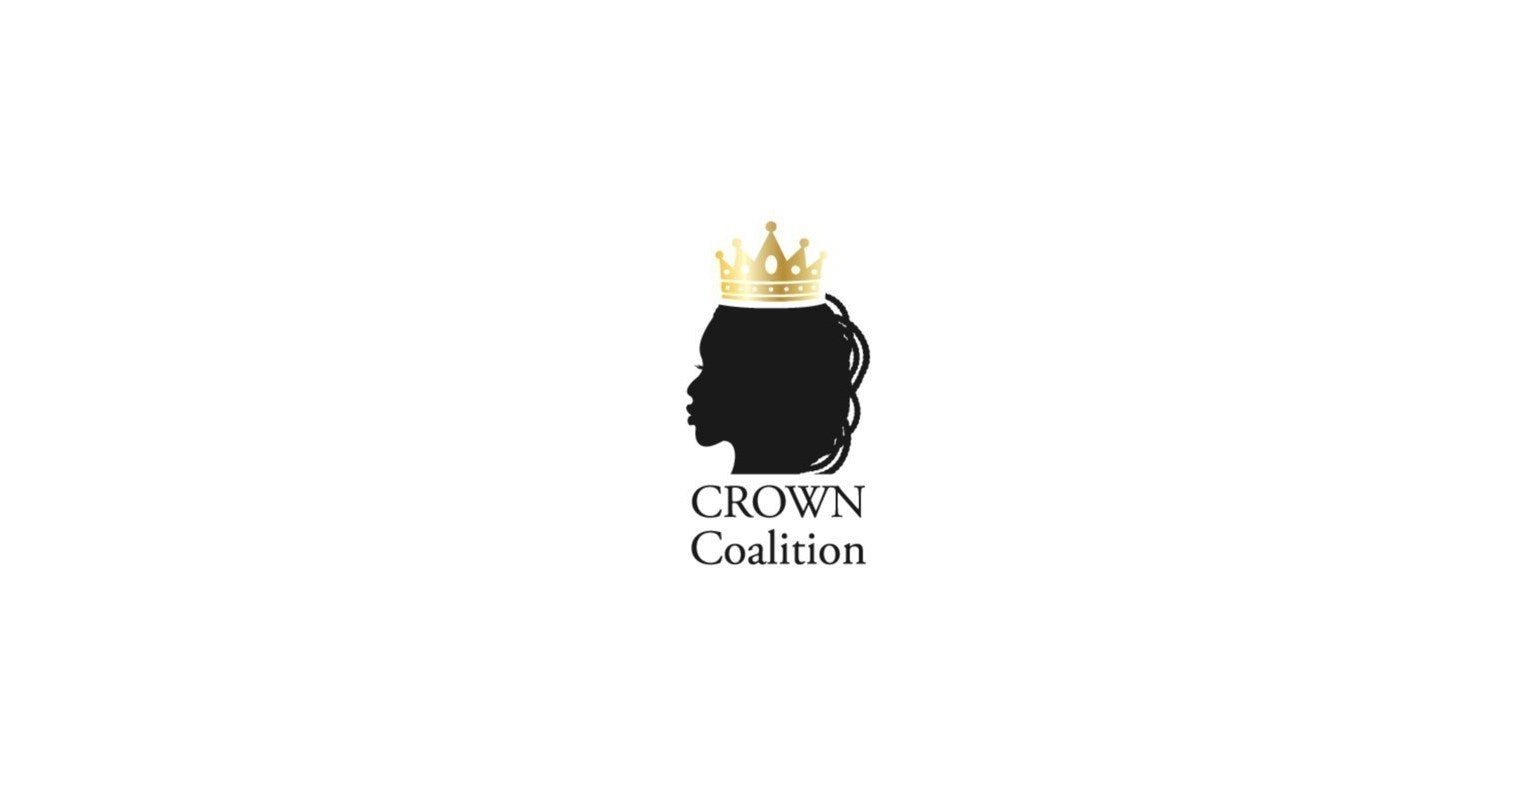 SB 188: CROWN Act- Race Discrimination in the Workplace Protection